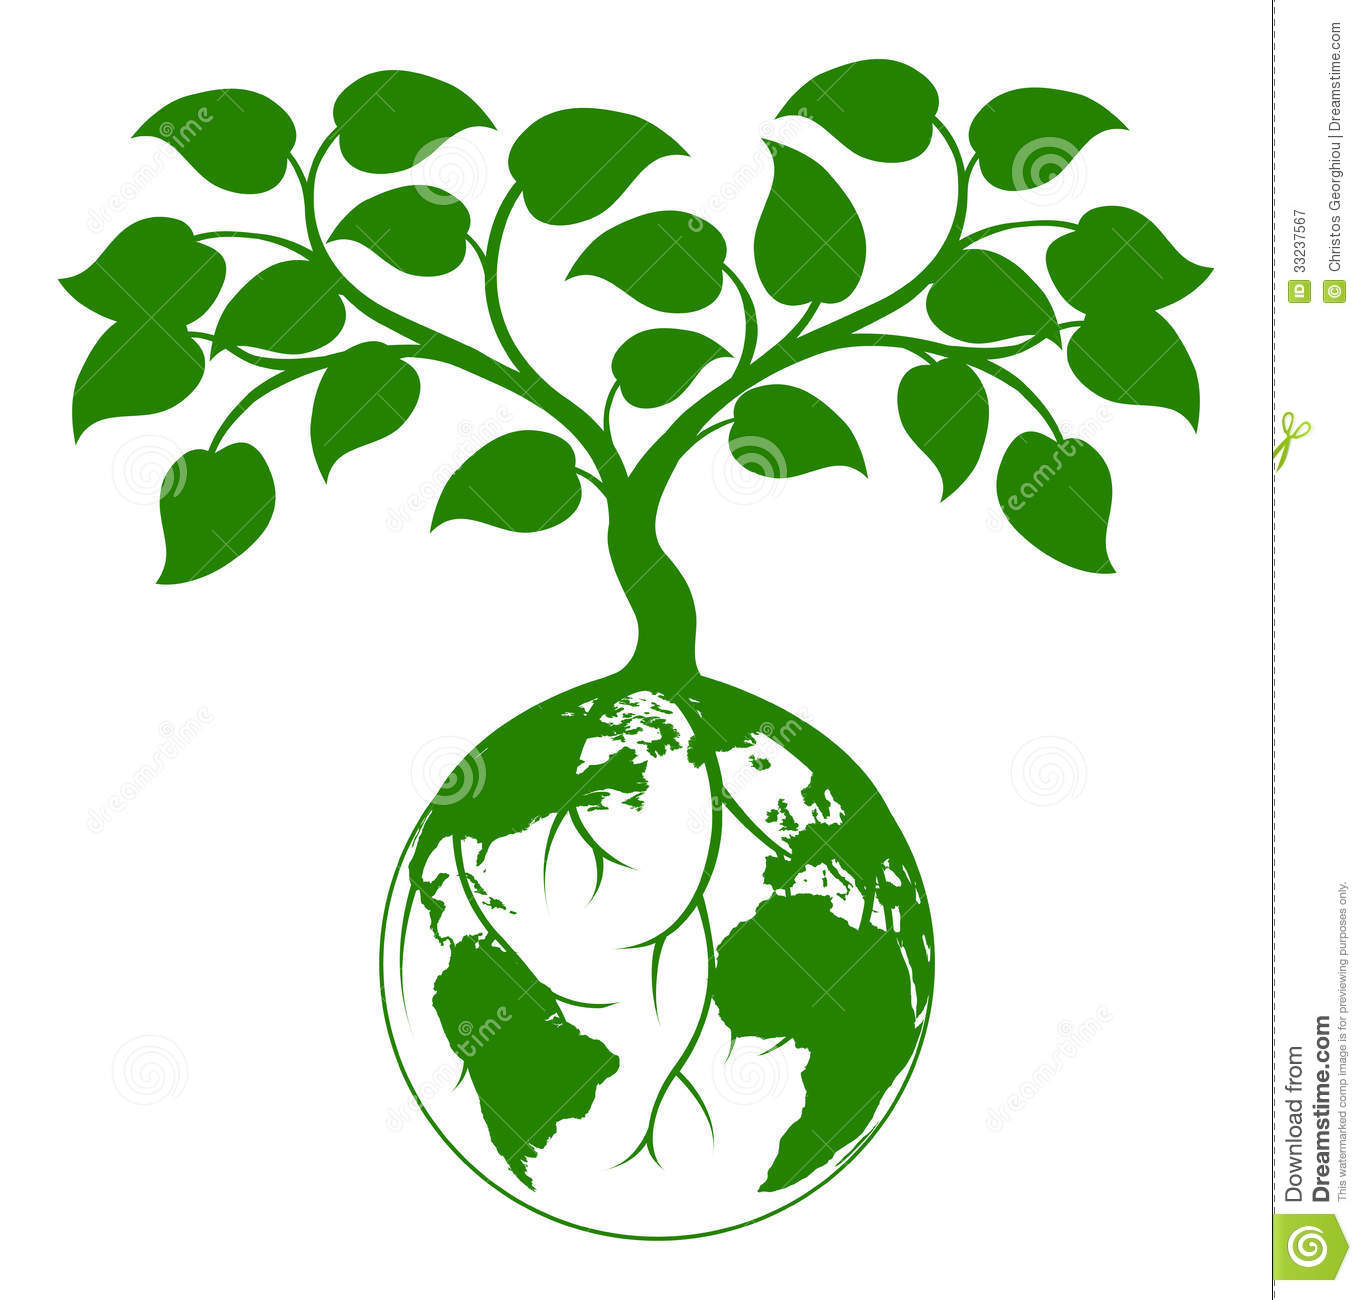 Earth Tree Graphic Royalty Free Stock Photography  Image: 33237567